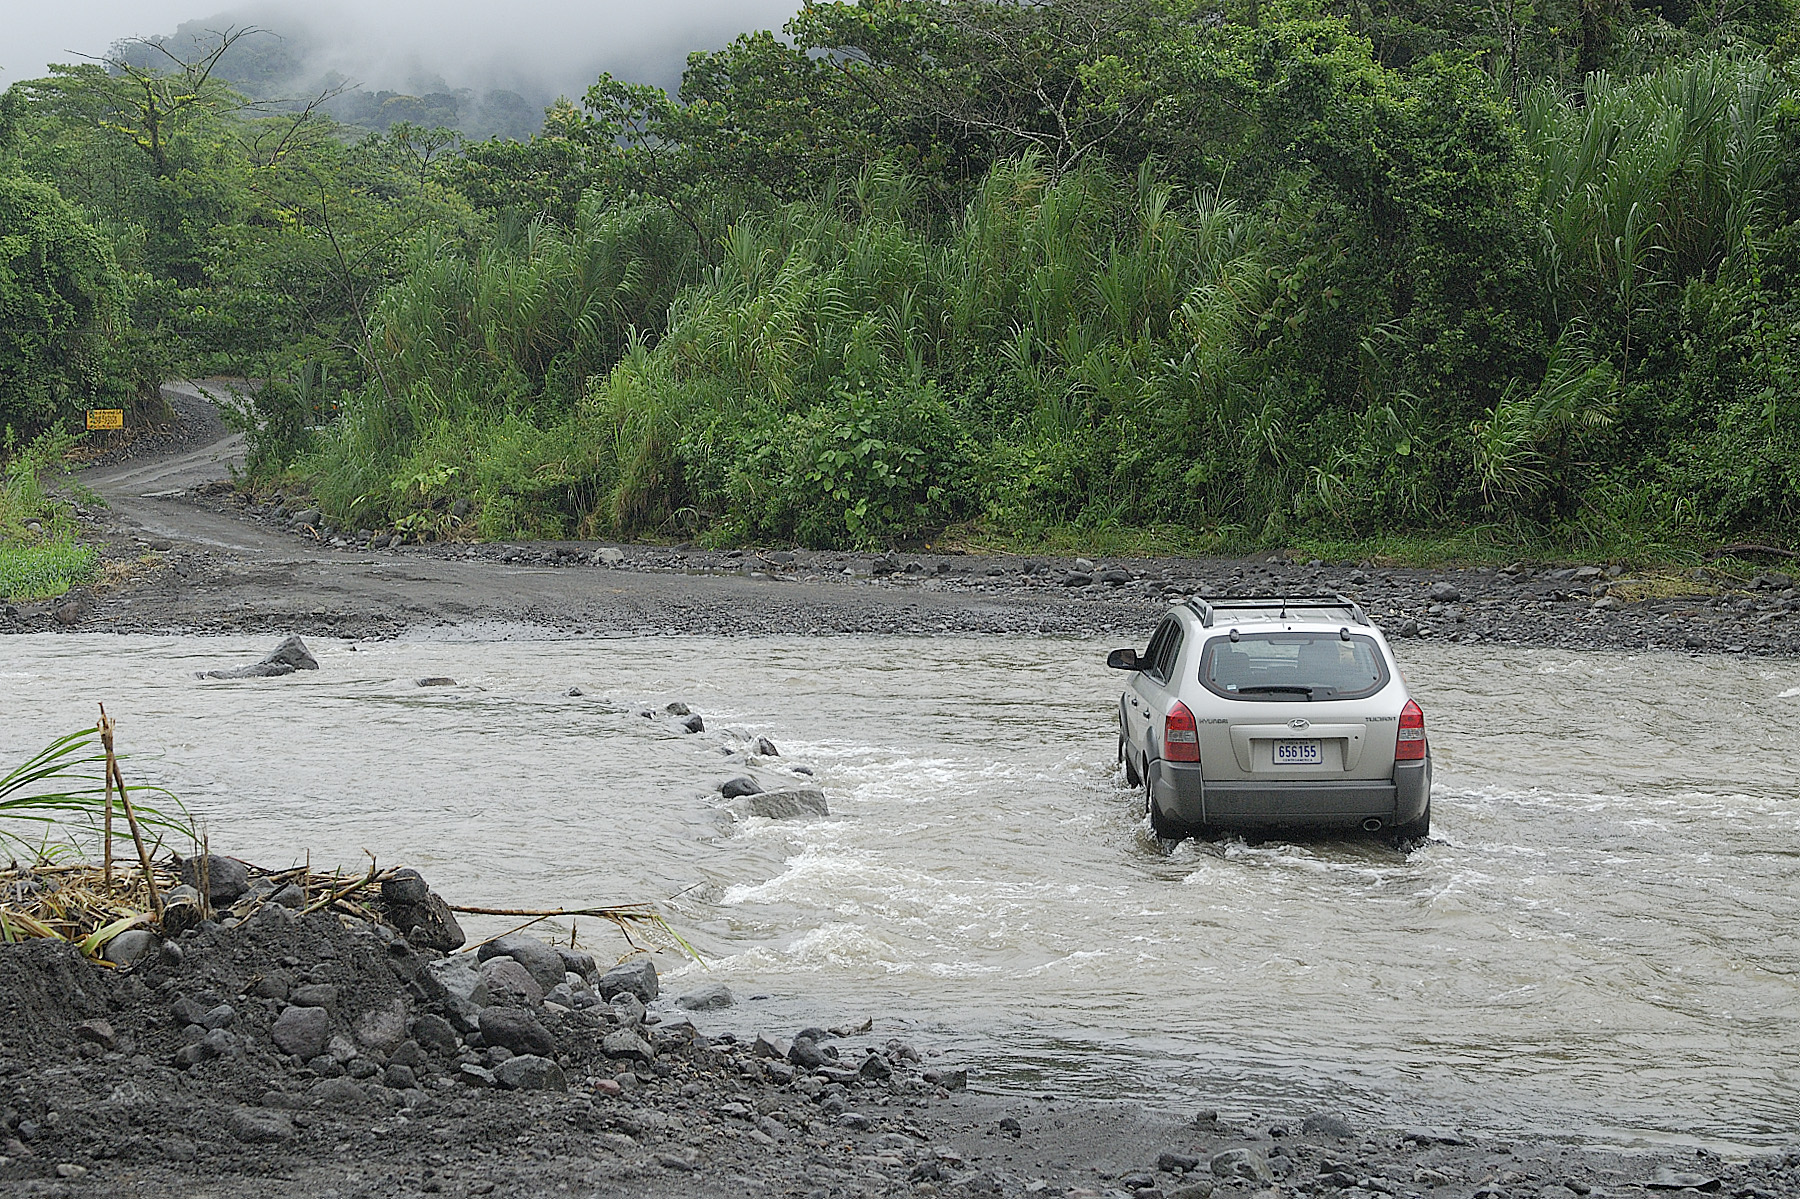 A local makes their way across a river, on my own in a rental car, I'm not sure I would have known exactly where to cross this river when we found the bridge was out!  Our group trip decided not to chance it, but they also had an alternate plan.